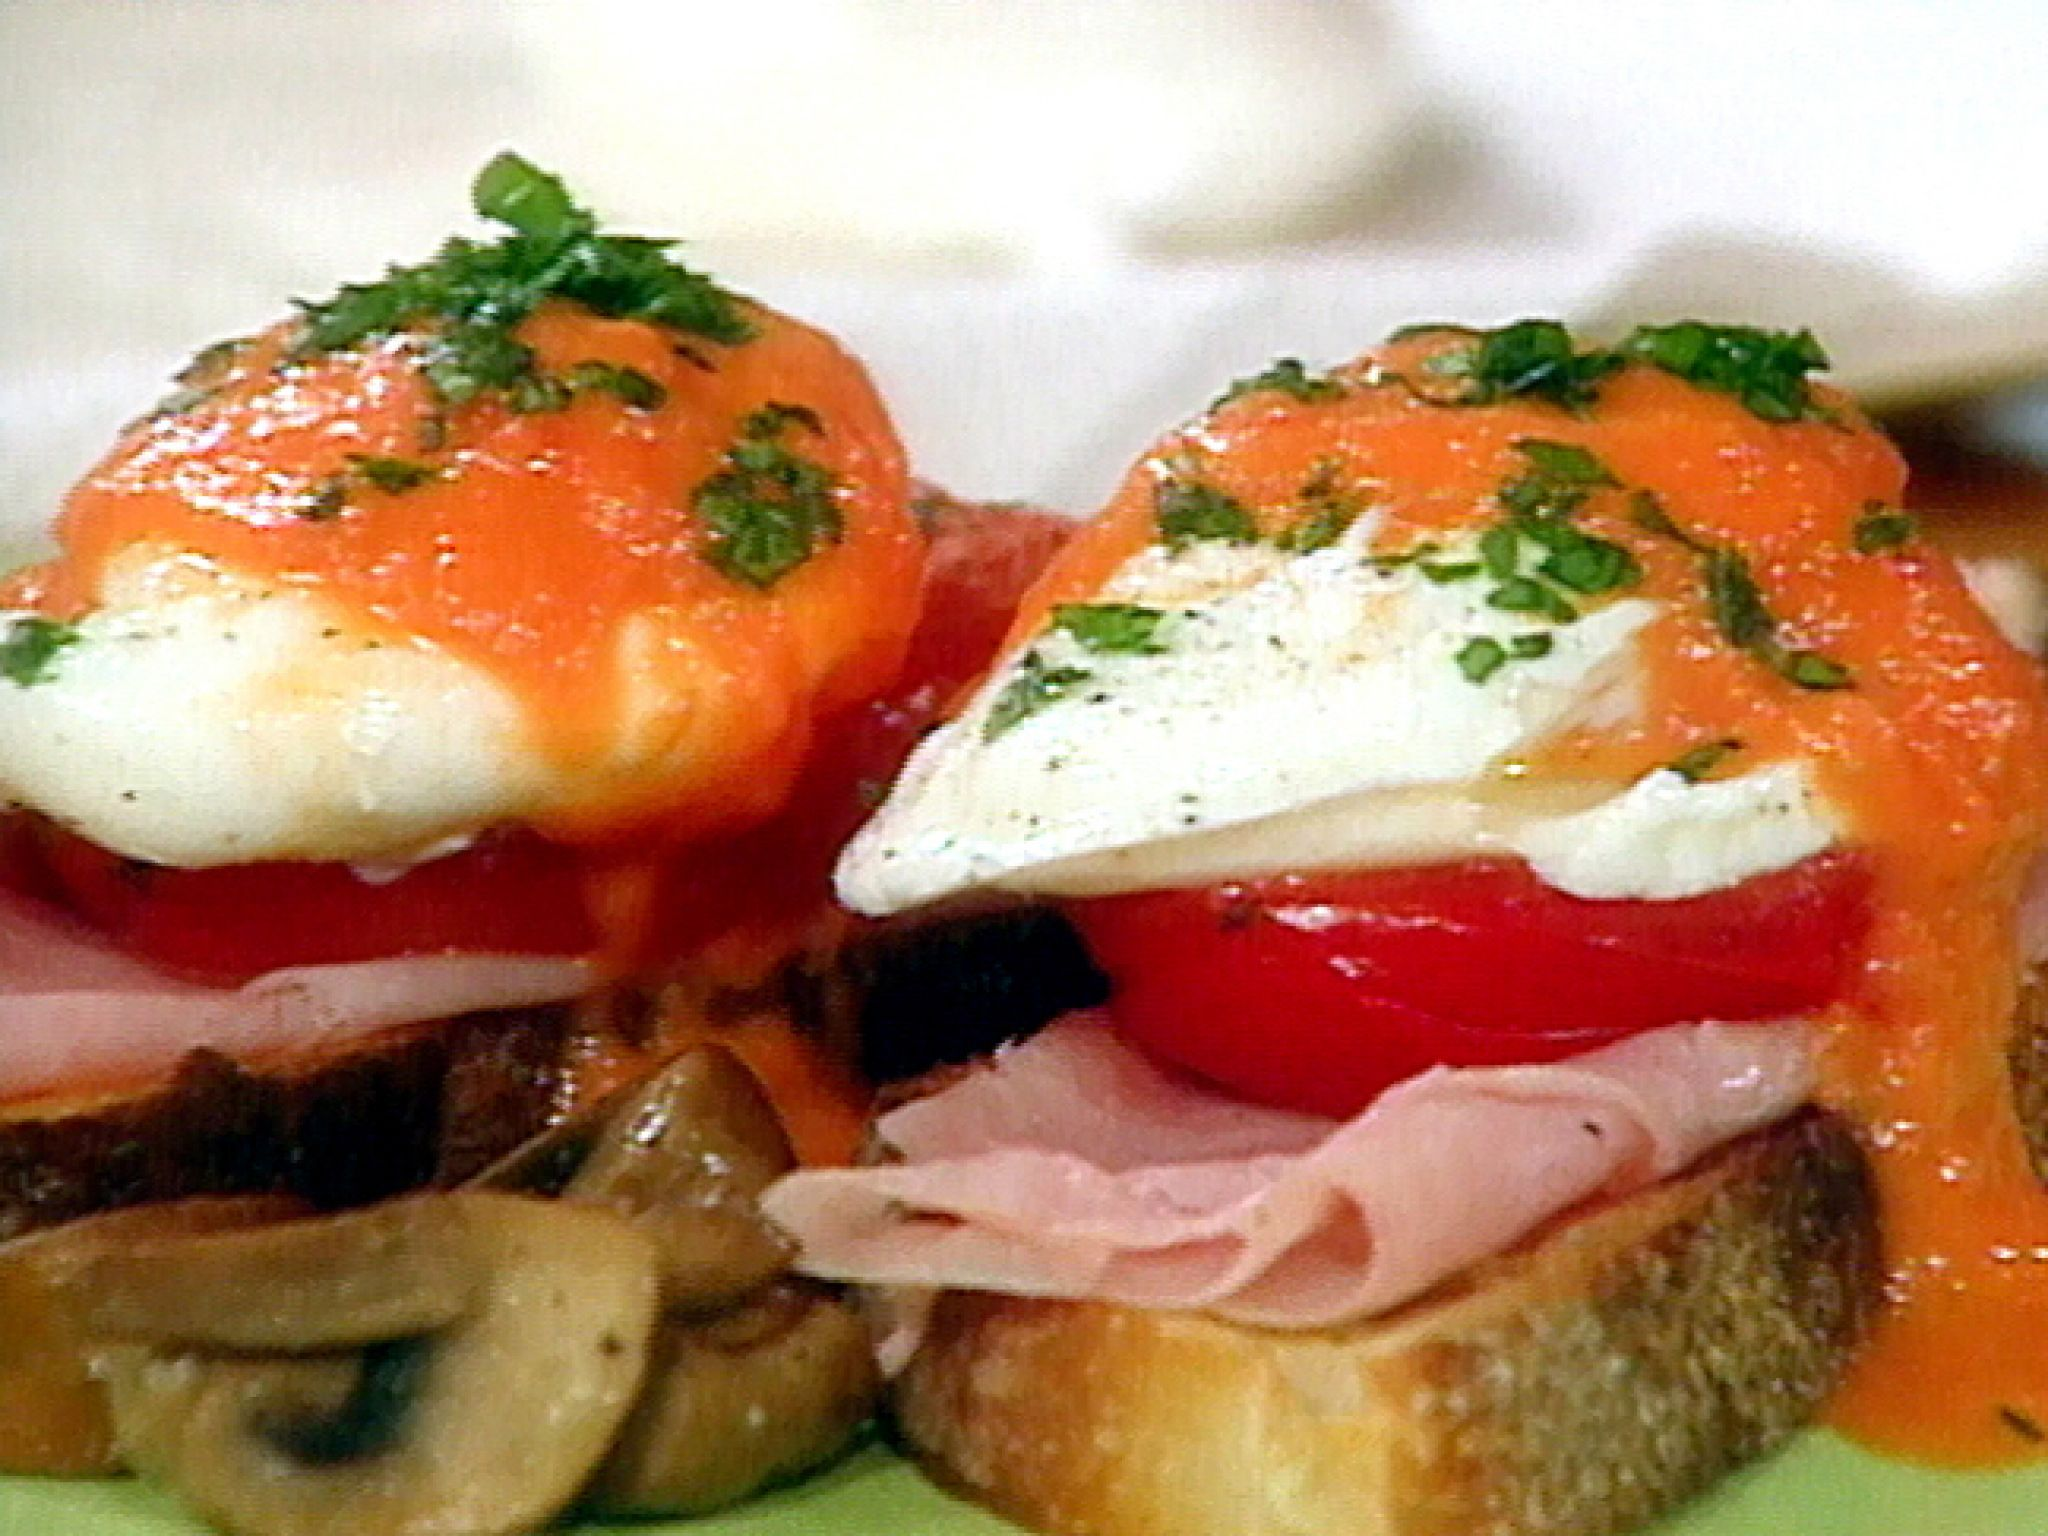 Adam and Eve on a Raft  (Poached Eggs with Roasted Tomatoes, Mushrooms and Ham) recipe from Sara's Secrets via Food Network